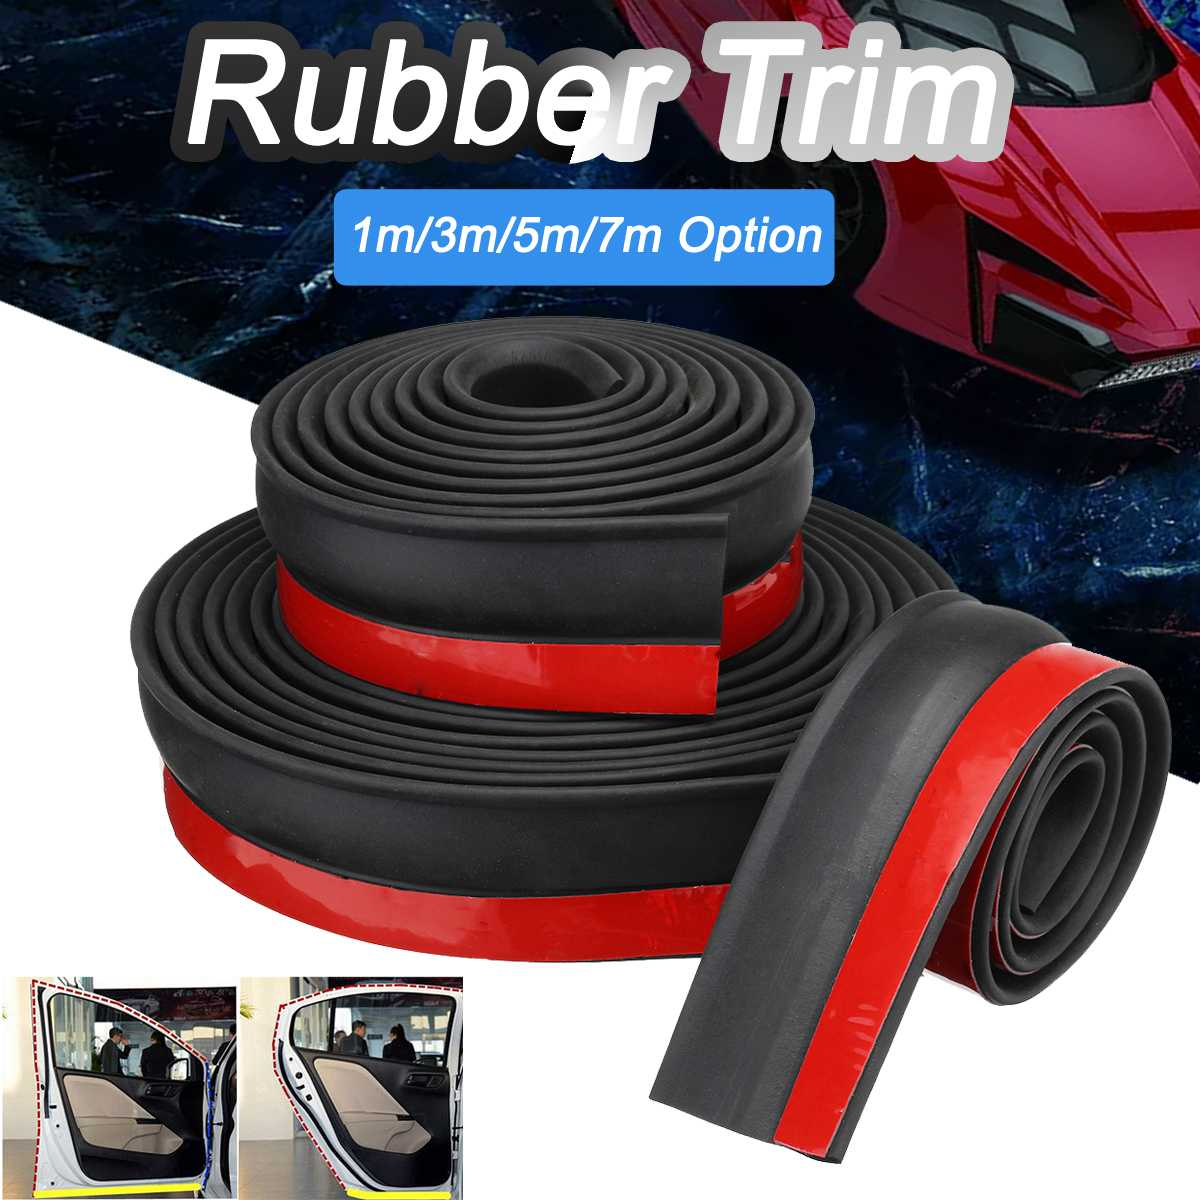 1m/3m/7m Garage Door Bottom Weather Stripping Rubber Sealing Strip Replacement Adehesive Door Bottom Seal